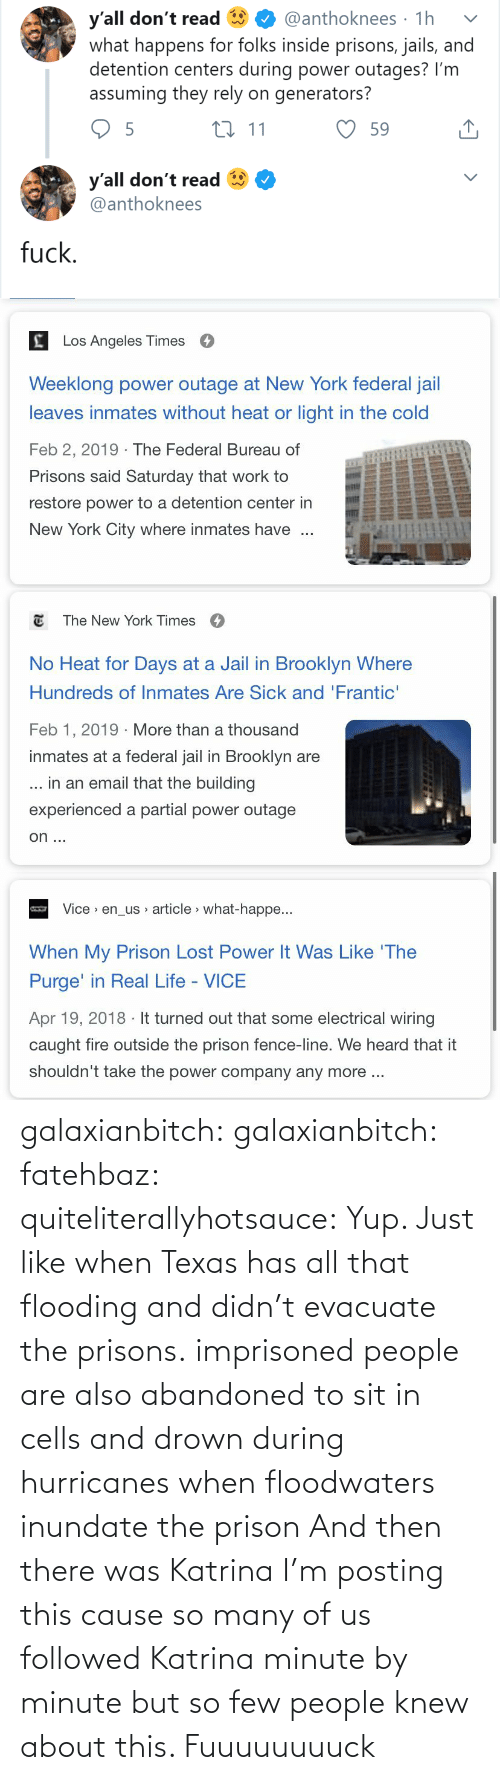 yup: y'all don't read  what happens for folks inside prisons, jails, and  detention centers during power outages? I'm  assuming they rely on generators?  @anthoknees · 1h  27 11  59  y'all don't read  @anthoknees  fuck.   Los Angeles Times  Weeklong power outage at New York federal jail  leaves inmates without heat or light in the cold  Feb 2, 2019 · The Federal Bureau of  Prisons said Saturday that work to  restore power to a detention center in  New York City where inmates have   E The New York Times  O  No Heat for Days at a Jail in Brooklyn Where  Hundreds of Inmates Are Sick and 'Frantic'  Feb 1, 2019 · More than a thousand  inmates at a federal jail in Brooklyn are  ... in an email that the building  experienced a partial power outage  on ...   Vice > en_us article > what-happe...  When My Prison Lost Power It Was Like 'The  Purge' in Real Life - VICE  Apr 19, 2018 · It turned out that some electrical wiring  caught fire outside the prison fence-line. We heard that it  shouldn't take the power company any more .. galaxianbitch: galaxianbitch:   fatehbaz:  quiteliterallyhotsauce:   Yup. Just like when Texas has all that flooding and didn't evacuate the prisons.   imprisoned people are also abandoned to sit in cells and drown during hurricanes when floodwaters inundate the prison   And then there was Katrina        I'm posting this cause so many of us followed Katrina minute by minute but so few people knew about this.    Fuuuuuuuuck